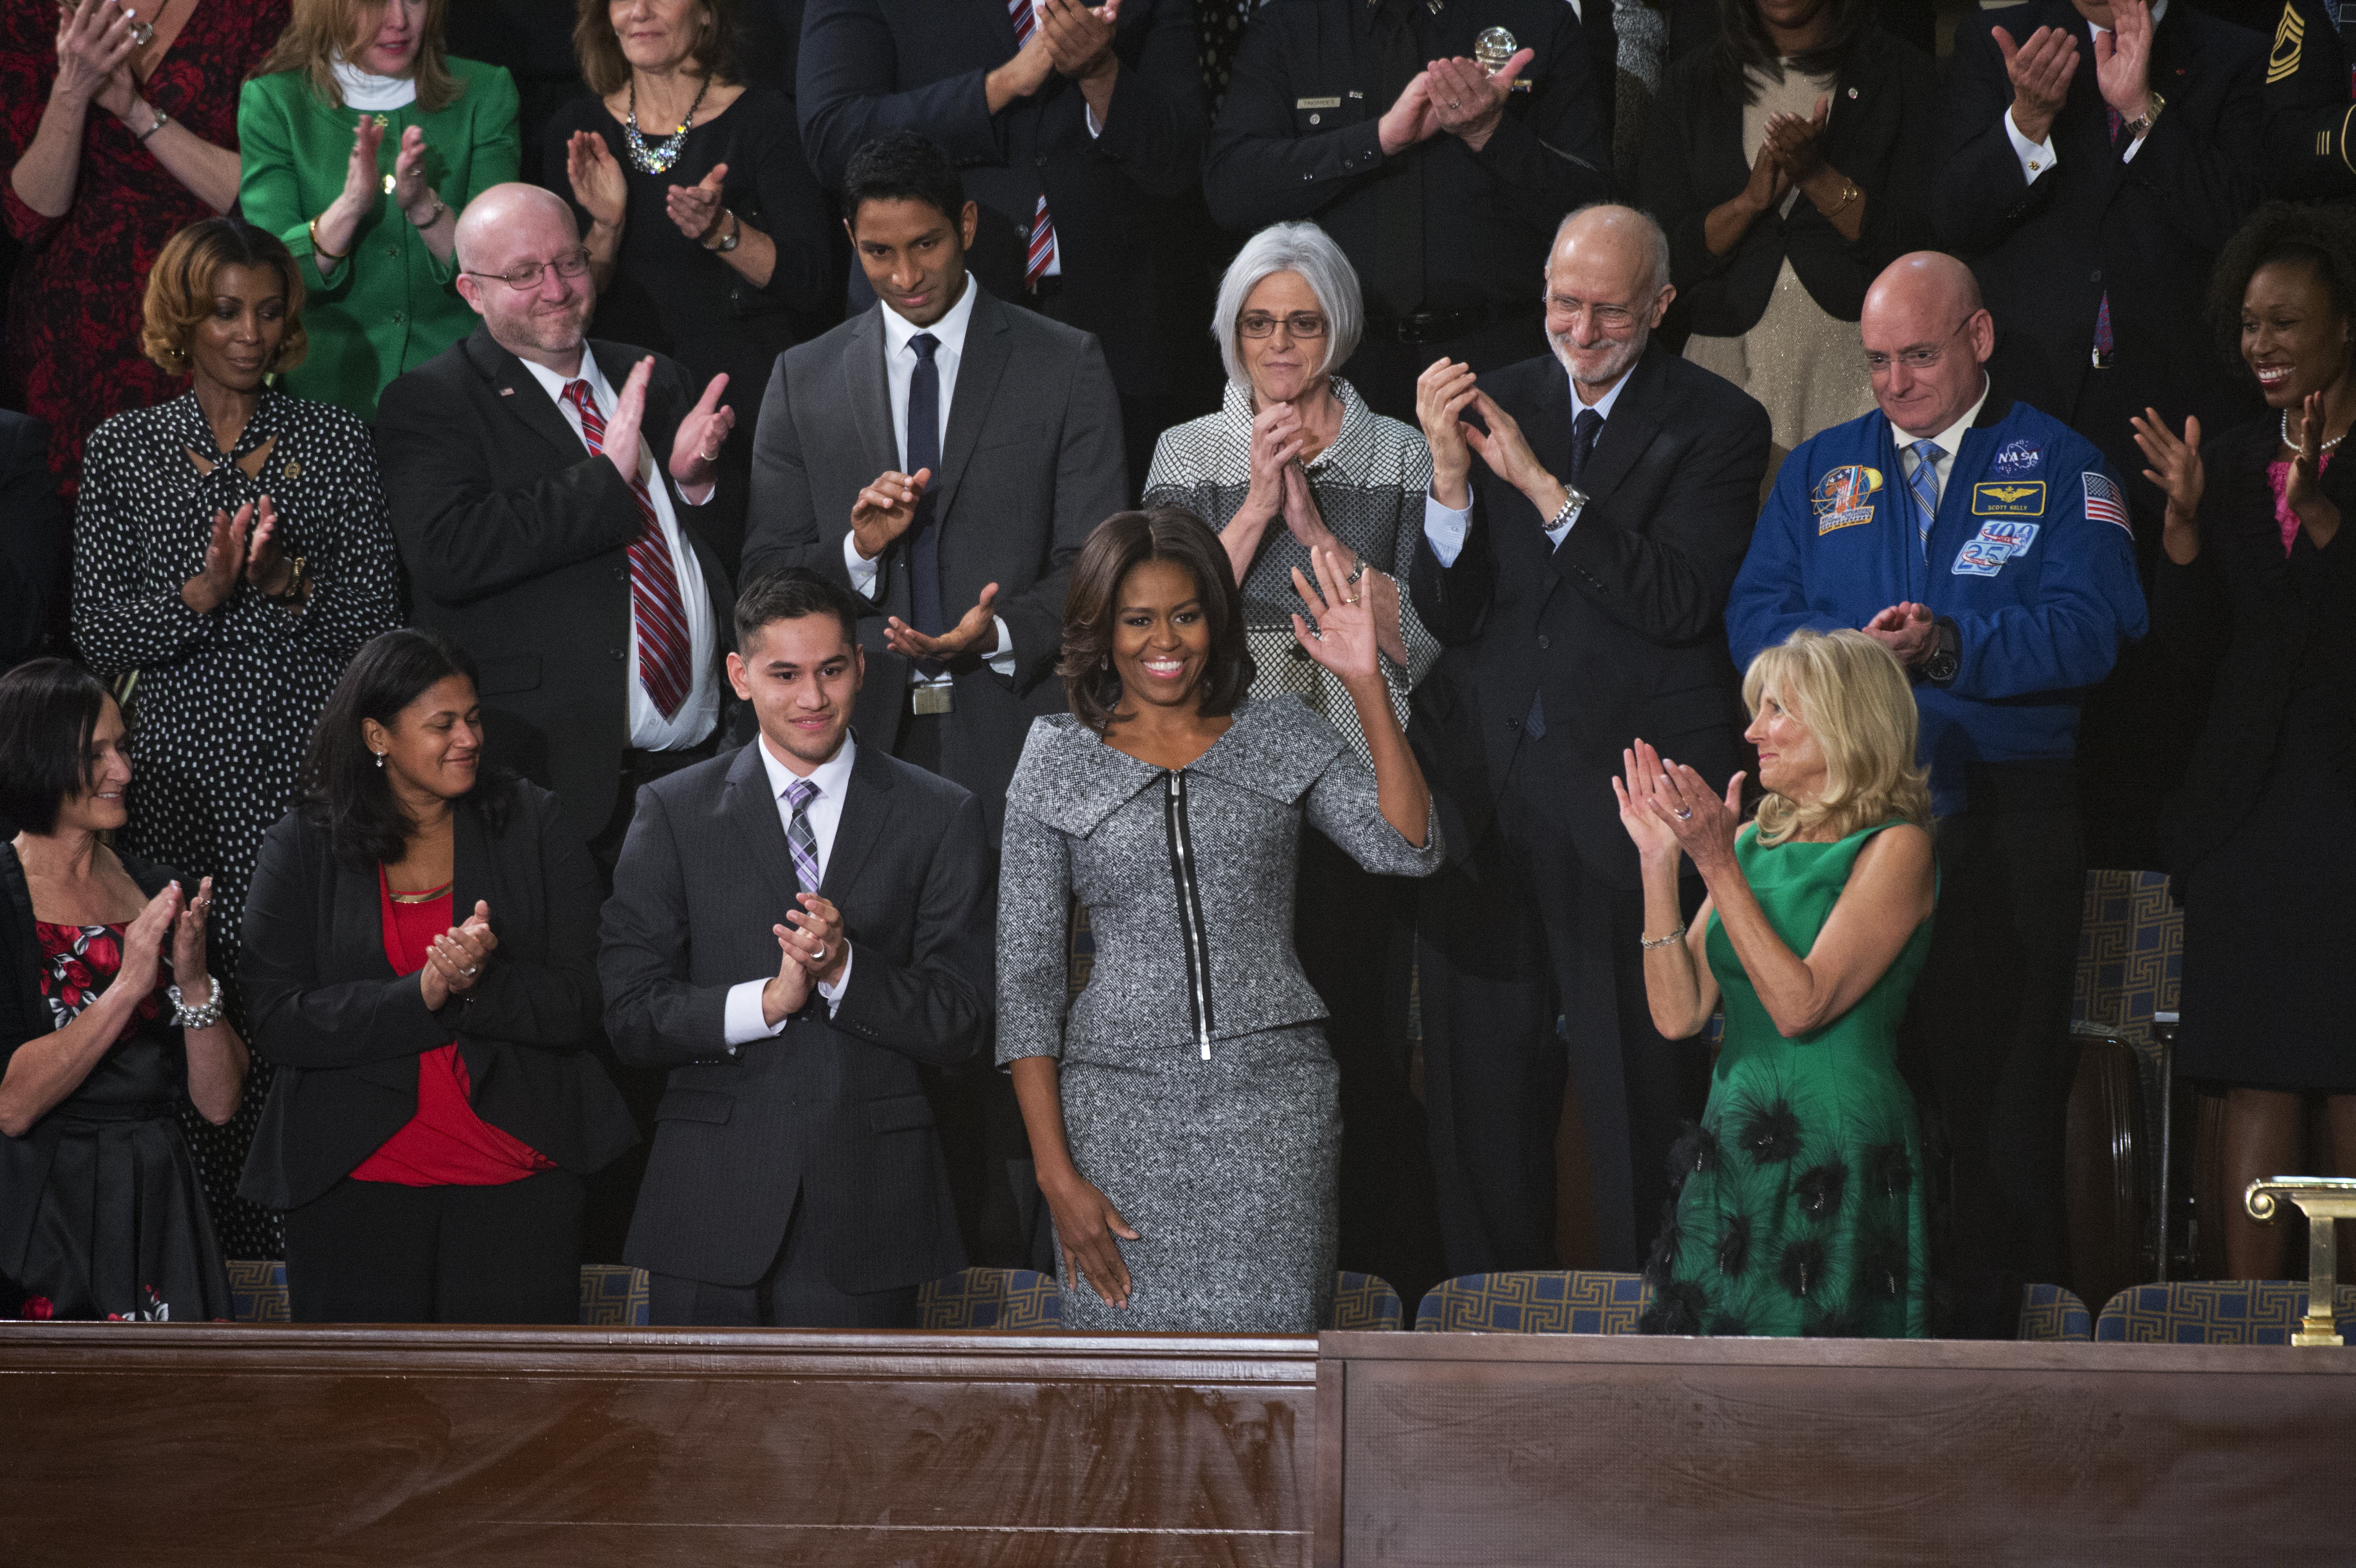 First Lady Michelle Obama arrives in the Capitol's House chamber before President Barack Obama's State of the Union address, January 20, 2015.